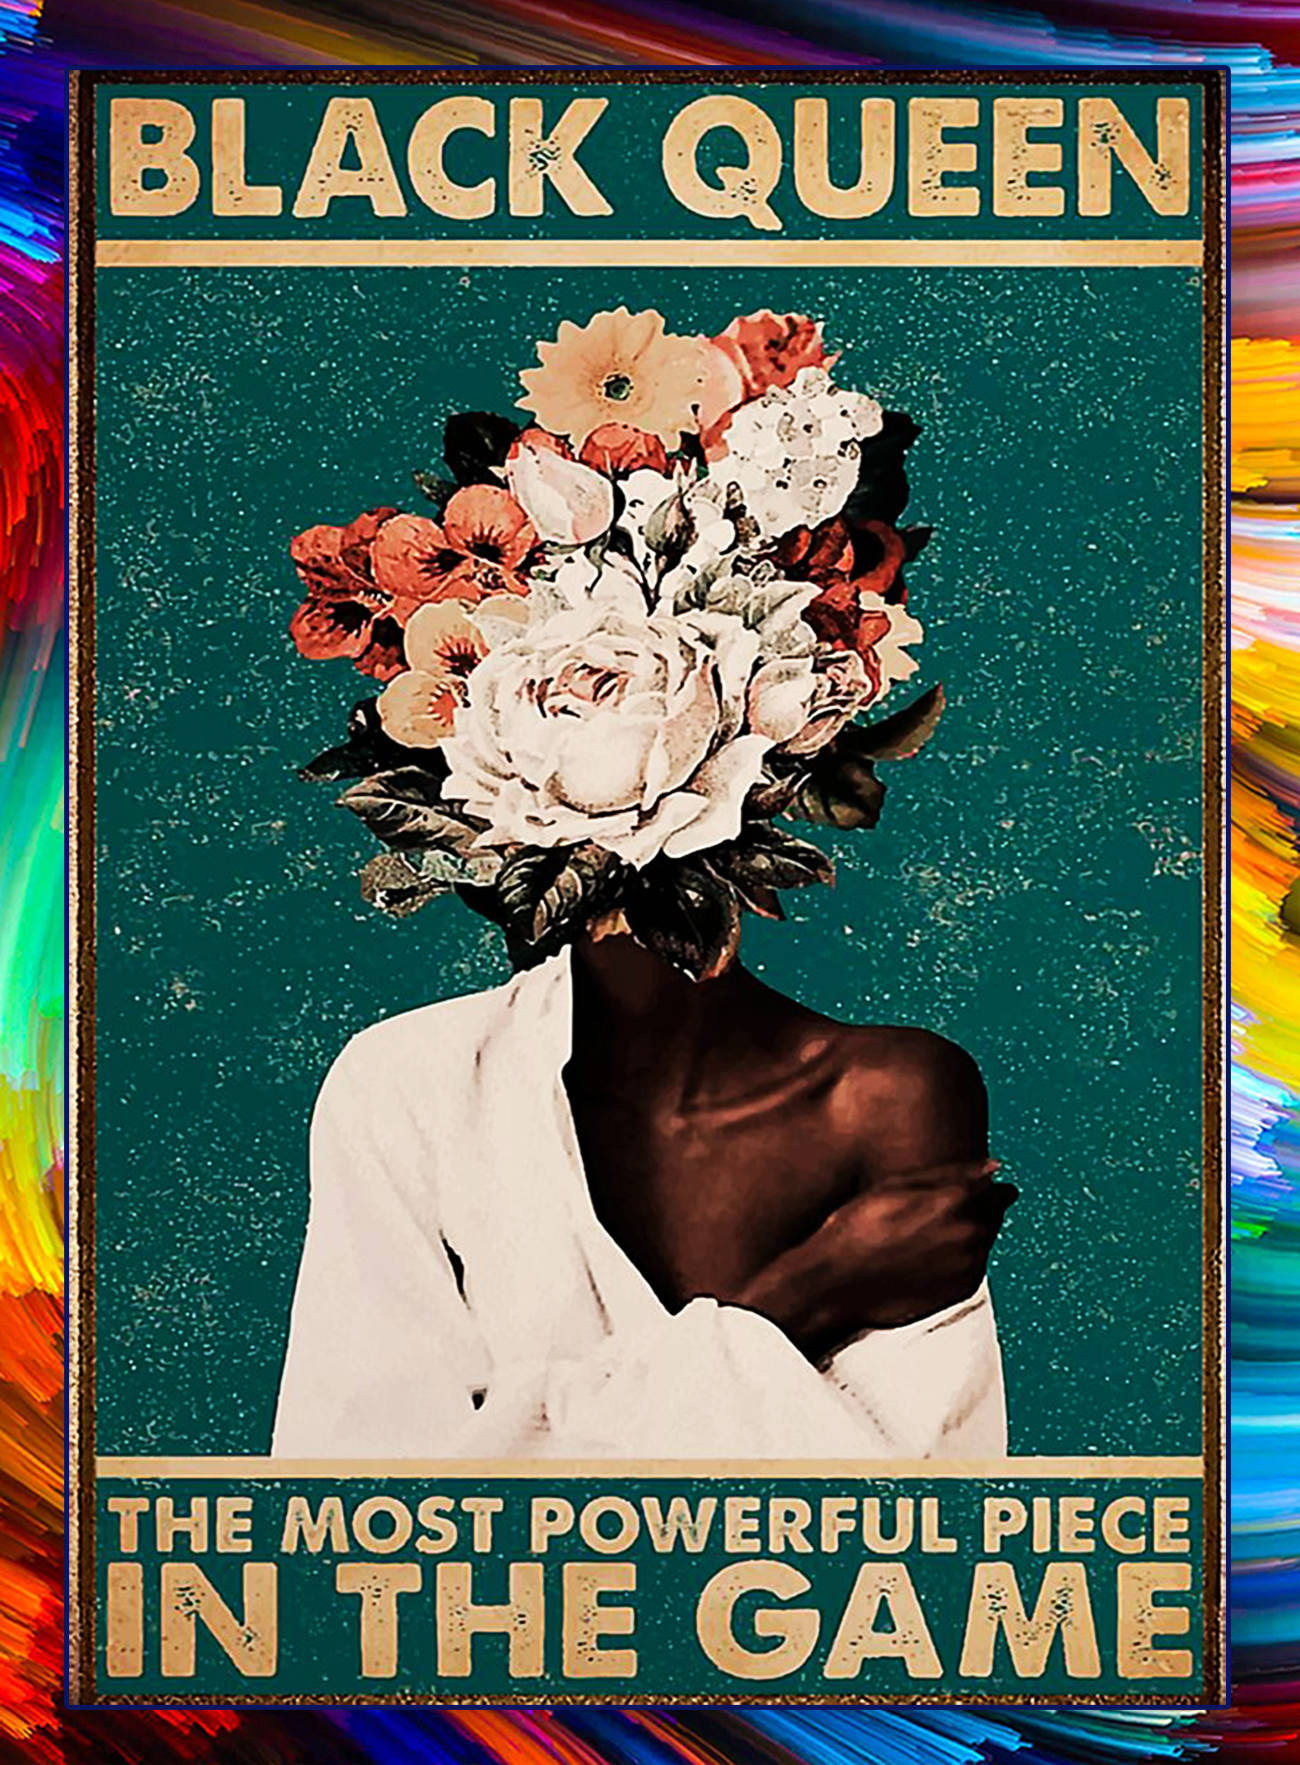 Pot head black queen the most powerful piece in the game poster - A1